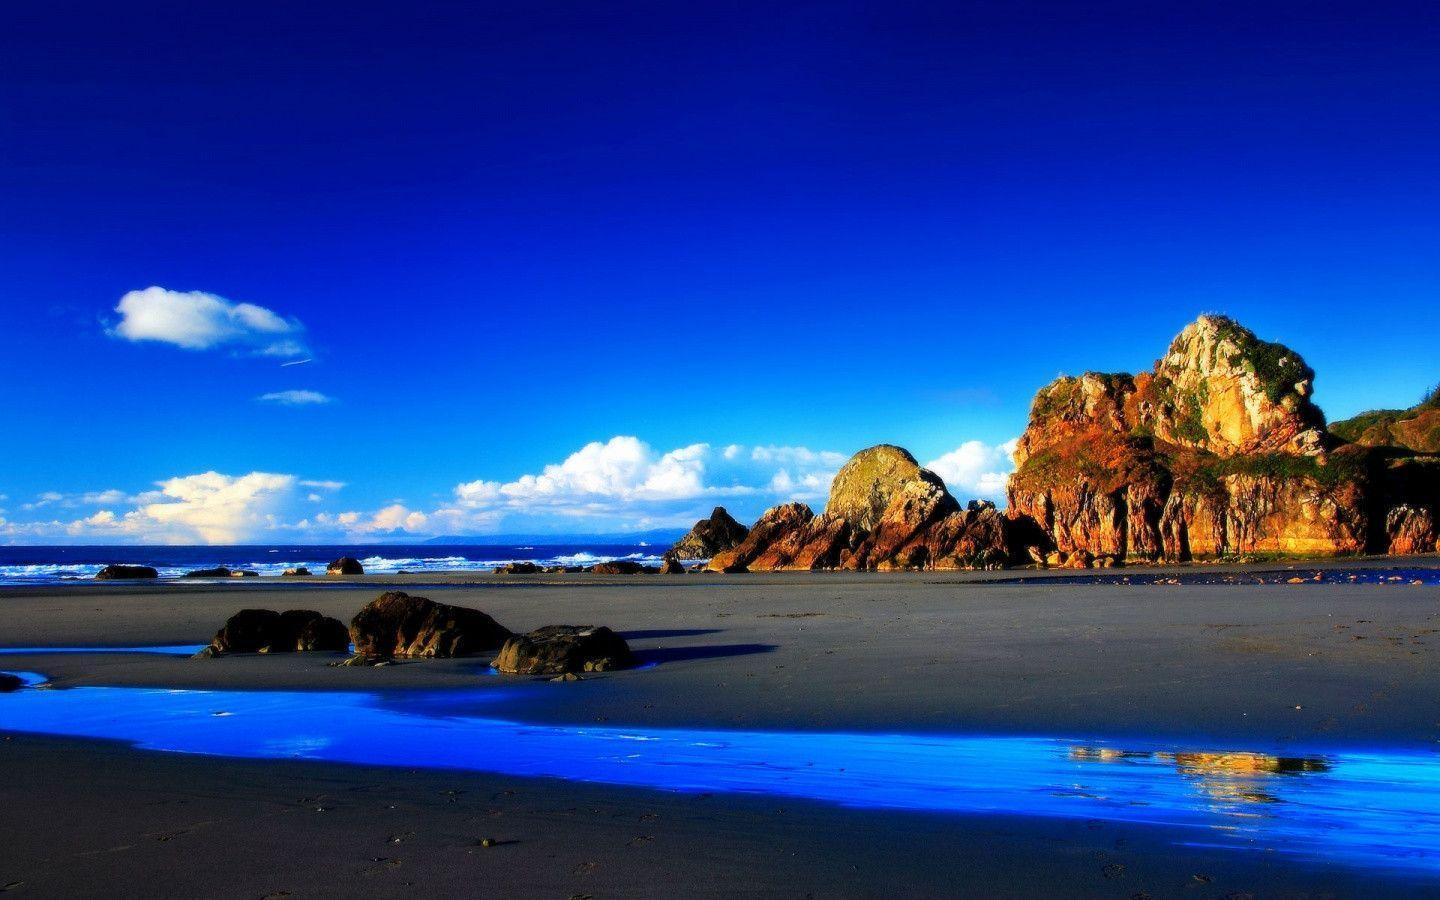 Wallpapers Rocky Beach Desktop Wallpapers: 1440x900 HD Wallpapers